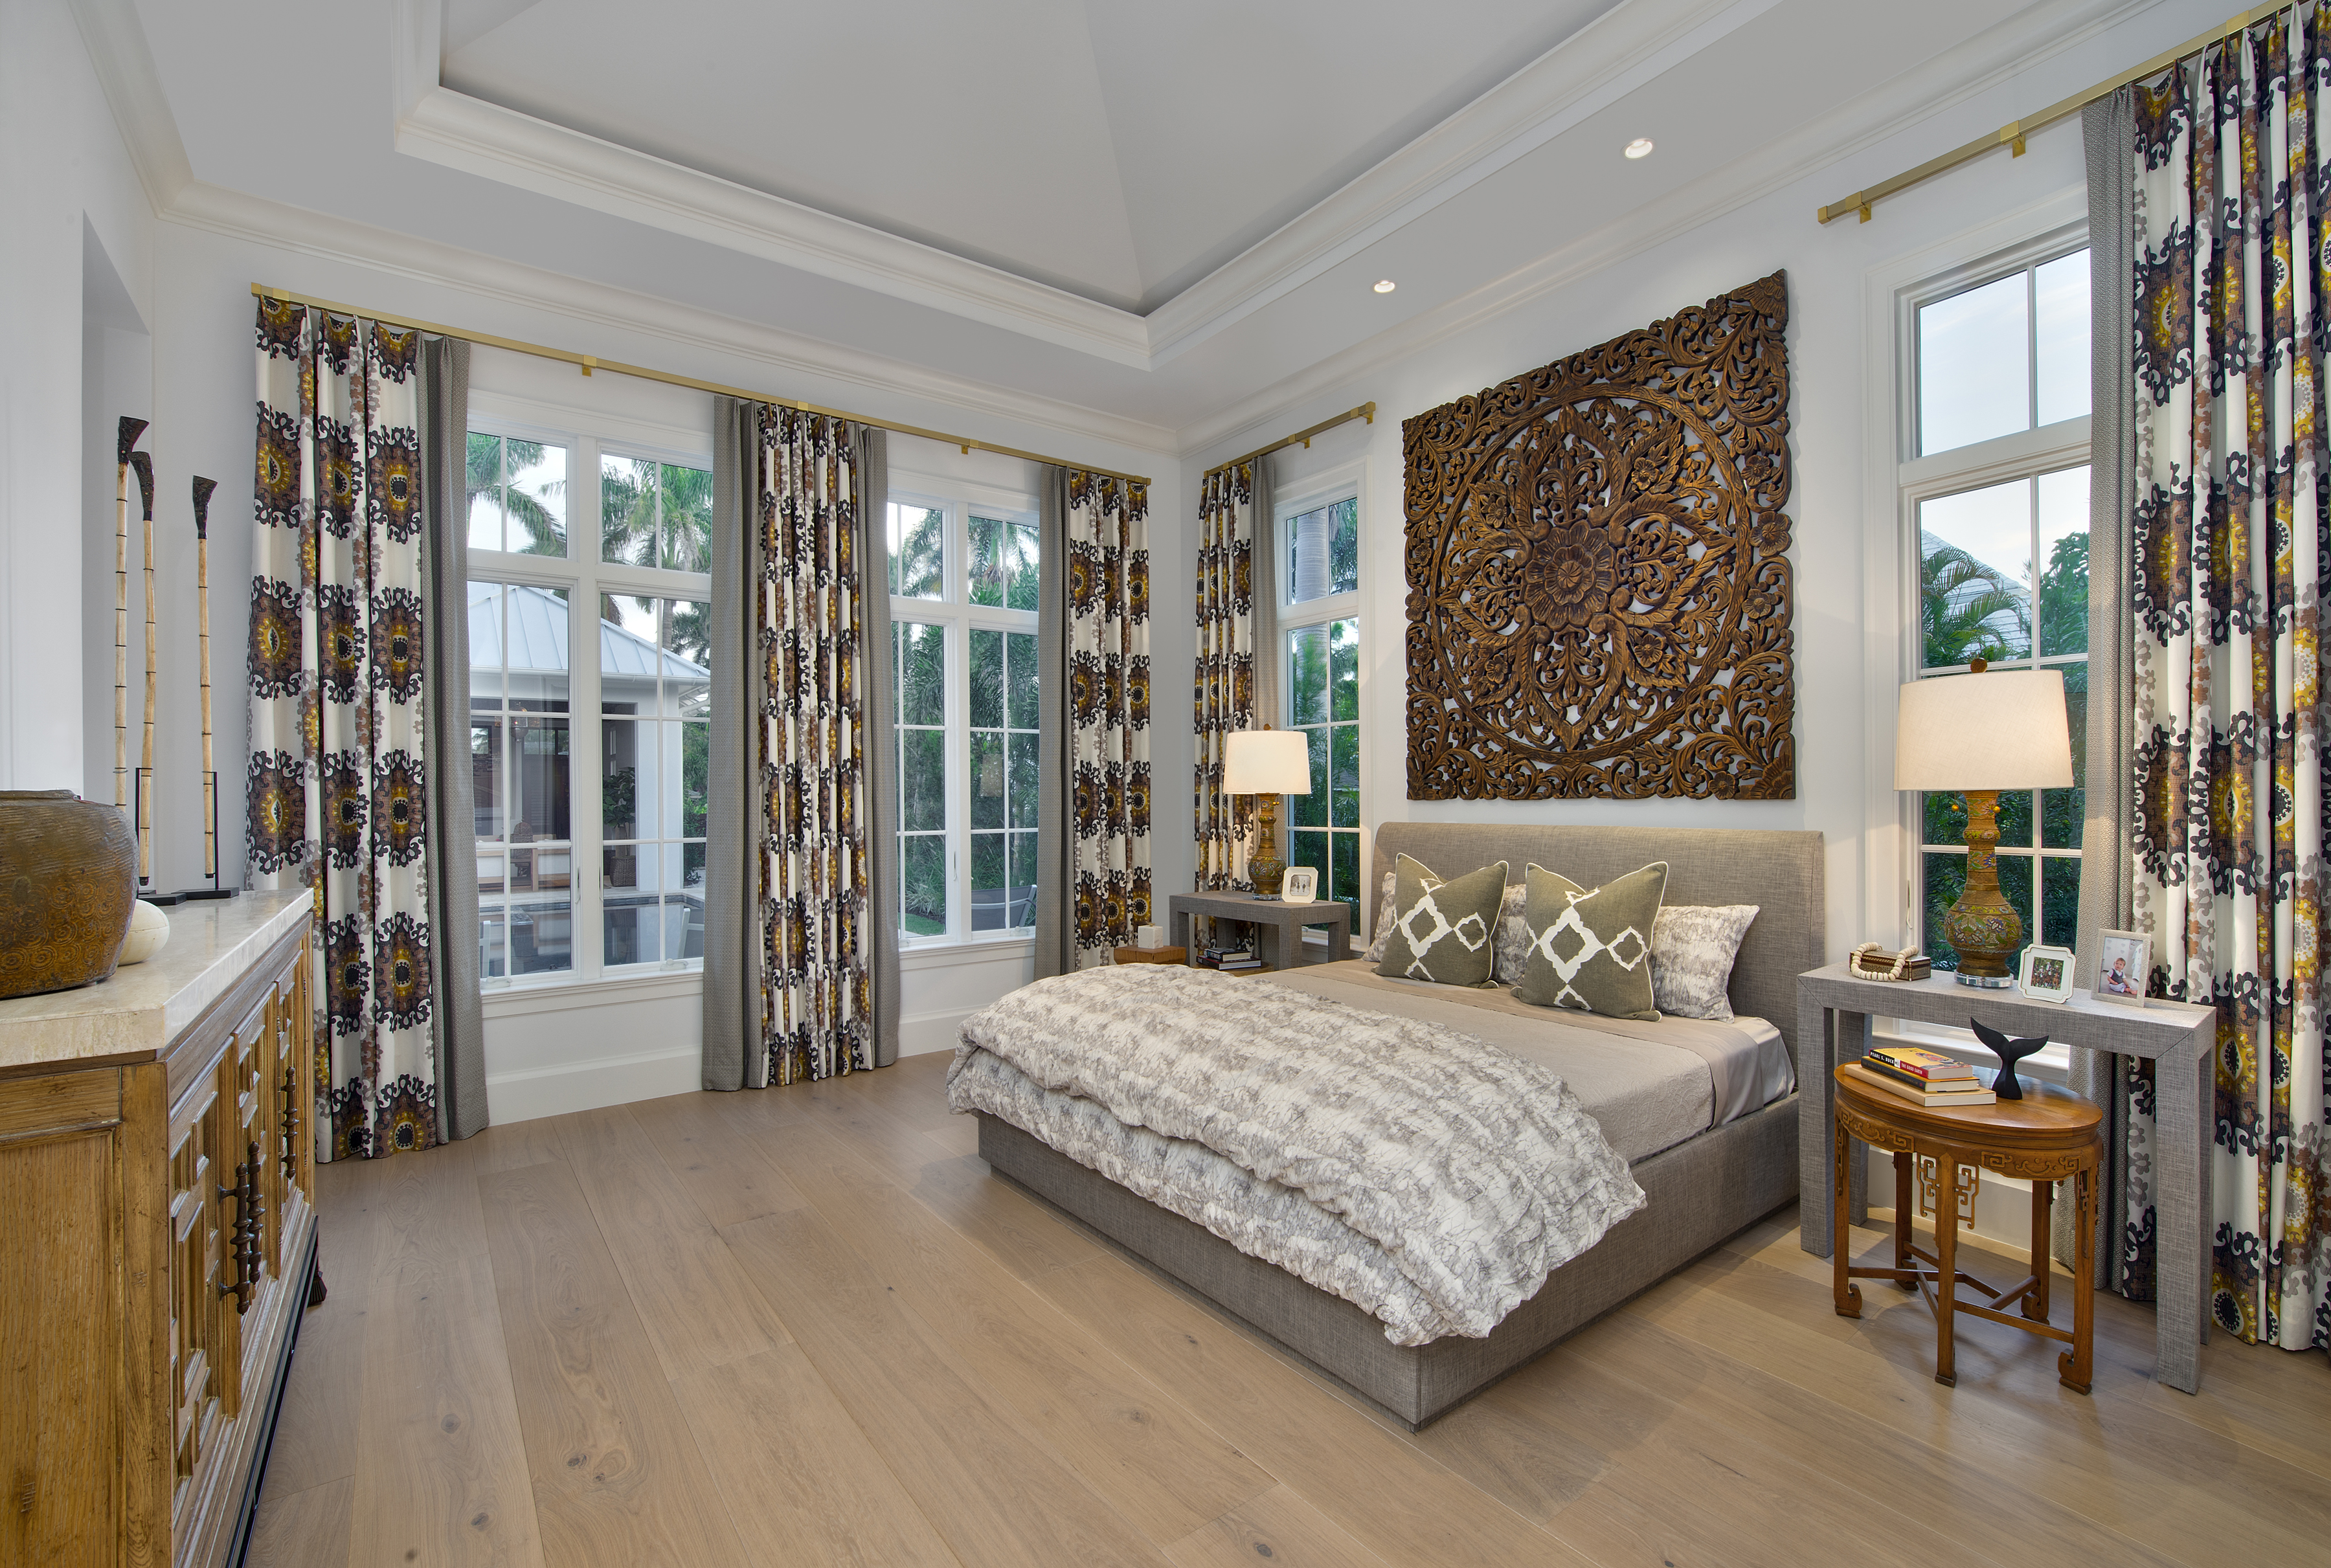 Jeffrey Fisher Home Luxury Interior Design Imagined Home Decor Master Bedroom